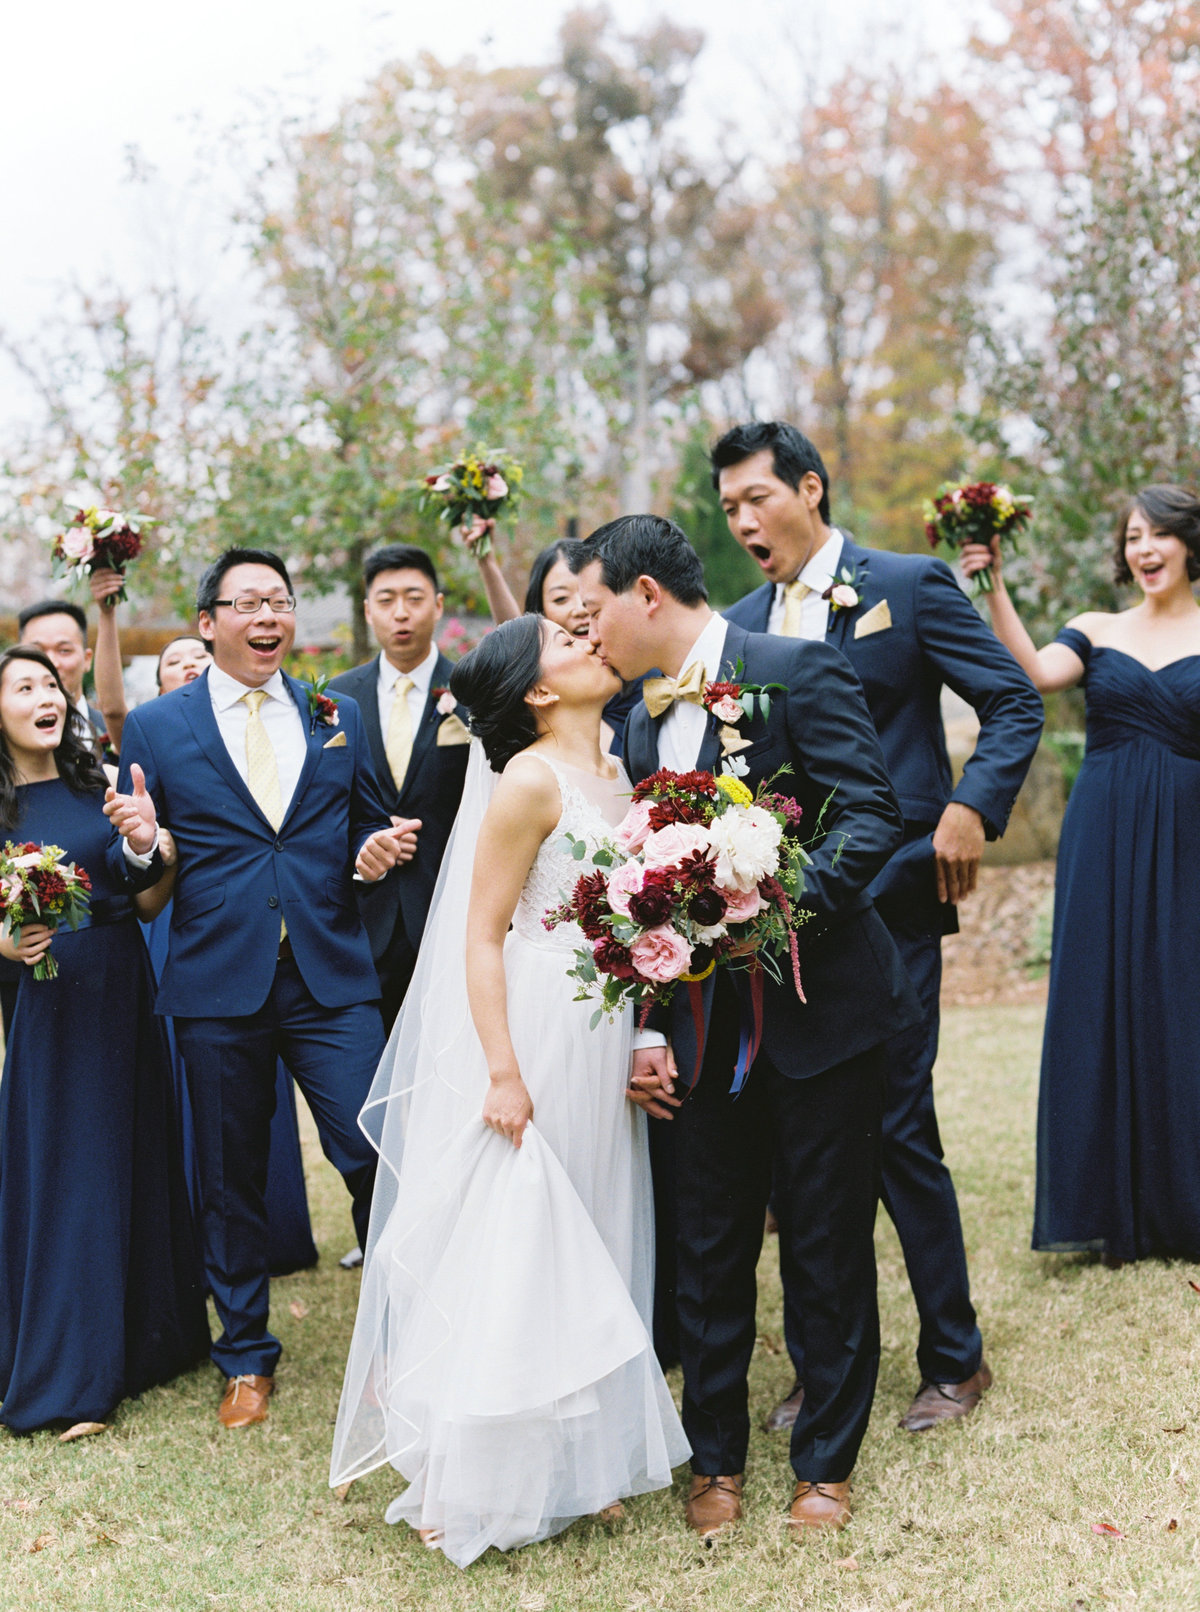 Helena + Sunny Rocky's Lake Estate Wedding - Cassie Valente Photography 0200